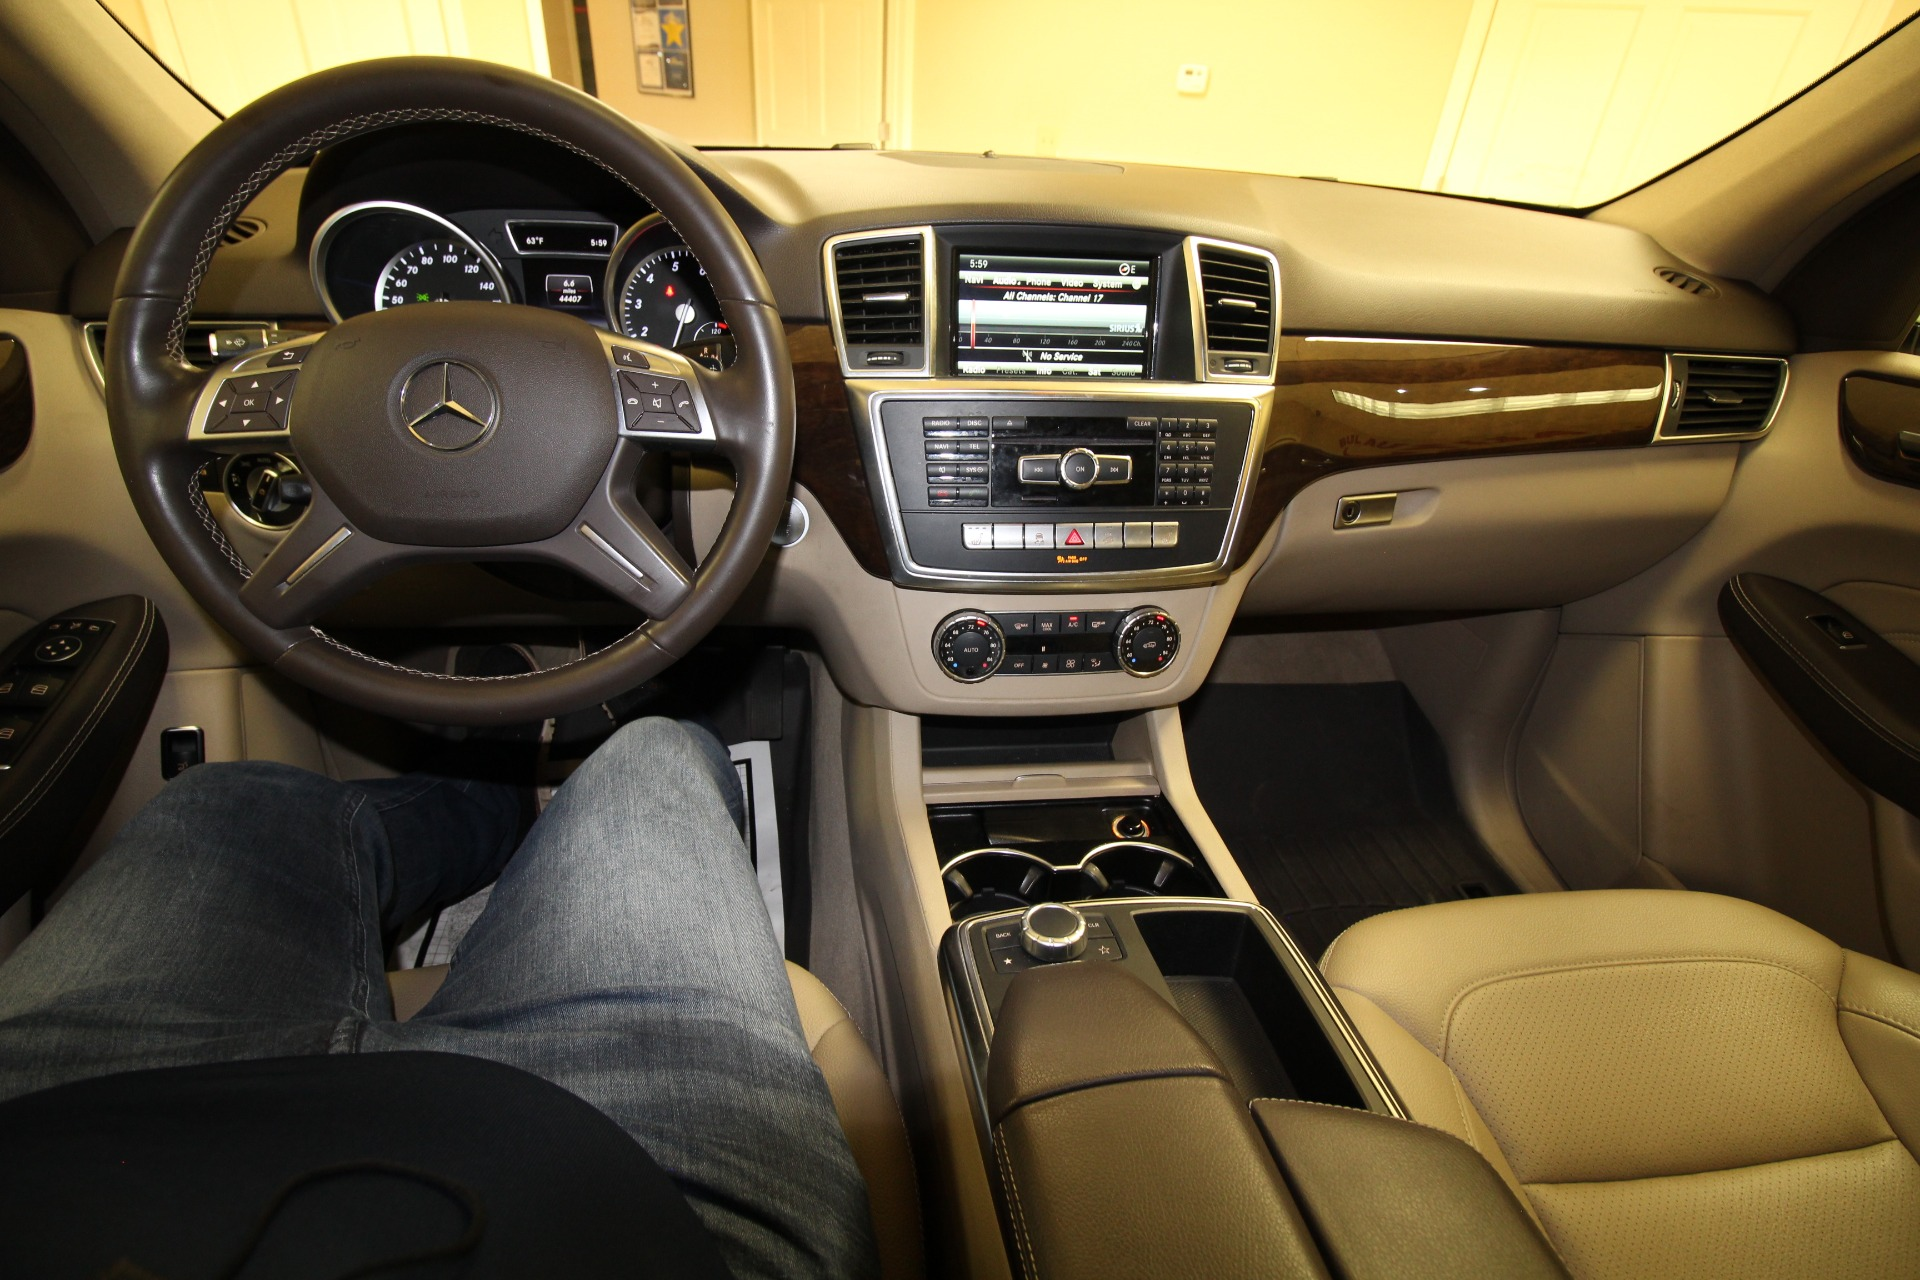 Used 2015 Mercedes-Benz M-Class ML350 4MATIC LOW MILES HARD TO FIND | Albany, NY